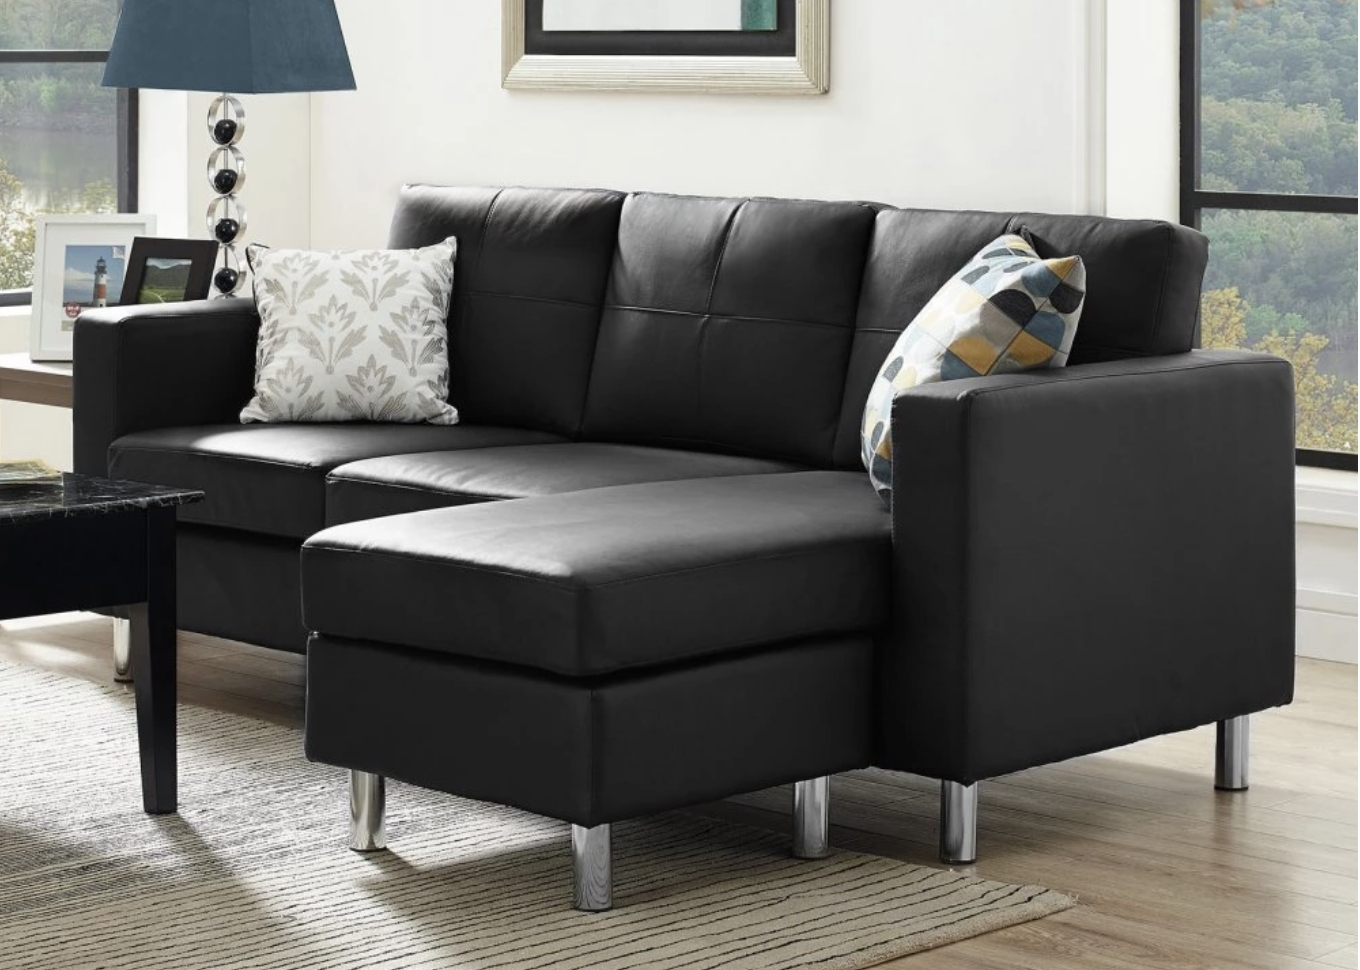 110X90 Sectional Sofas Within Most Recently Released 75 Modern Sectional Sofas For Small Spaces (2018) (Gallery 11 of 20)